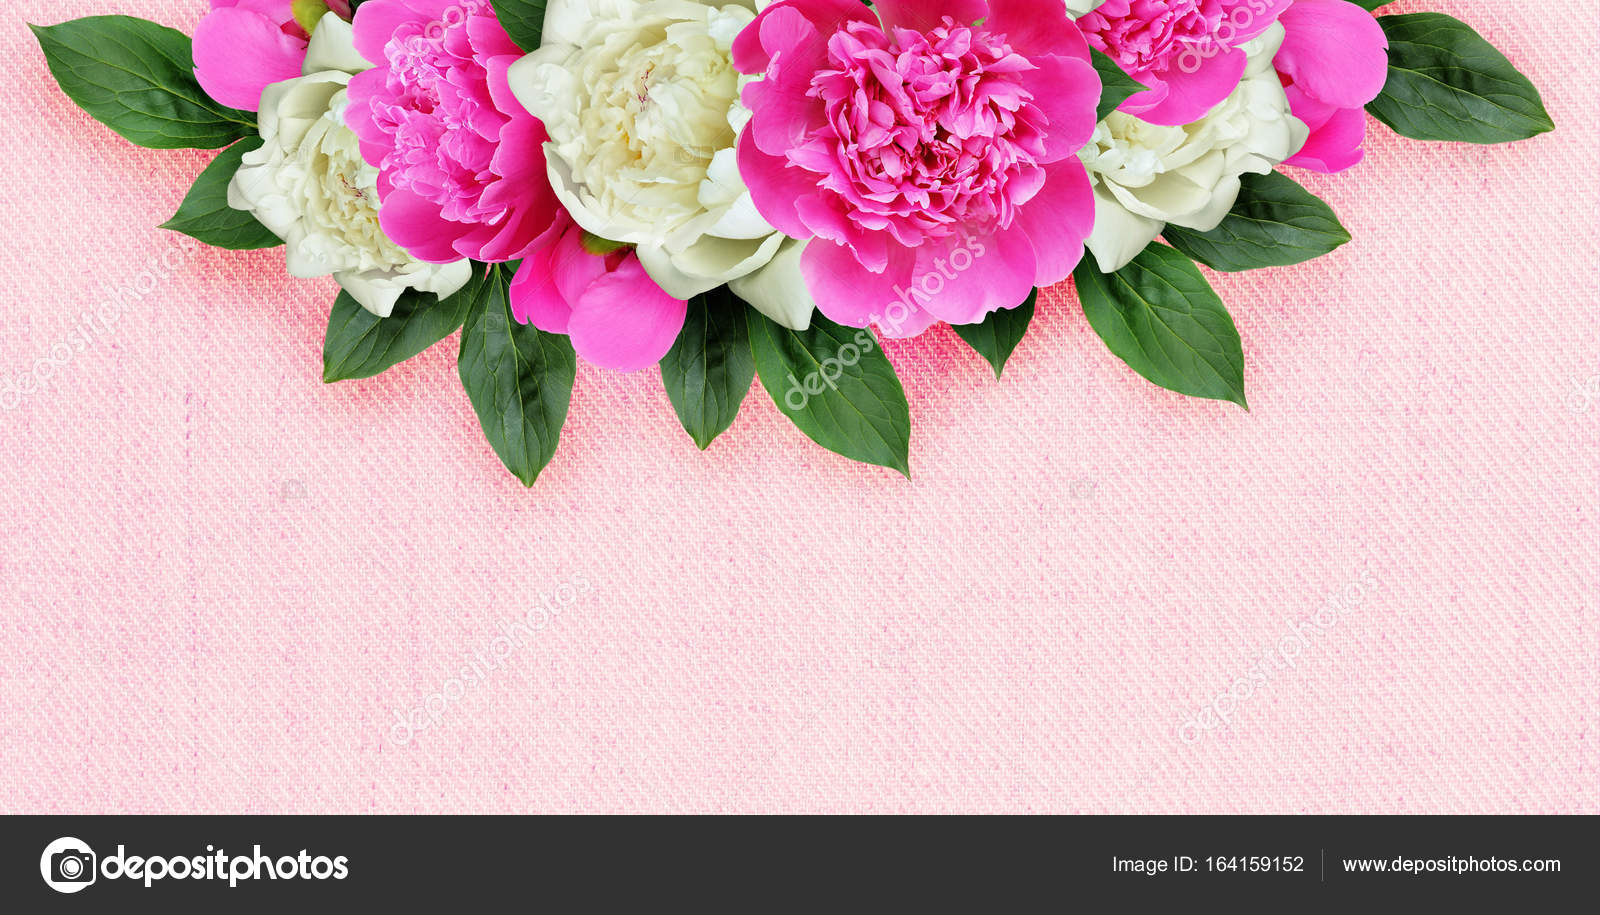 Background With Pink And White Peonies Flowers Stock Photo